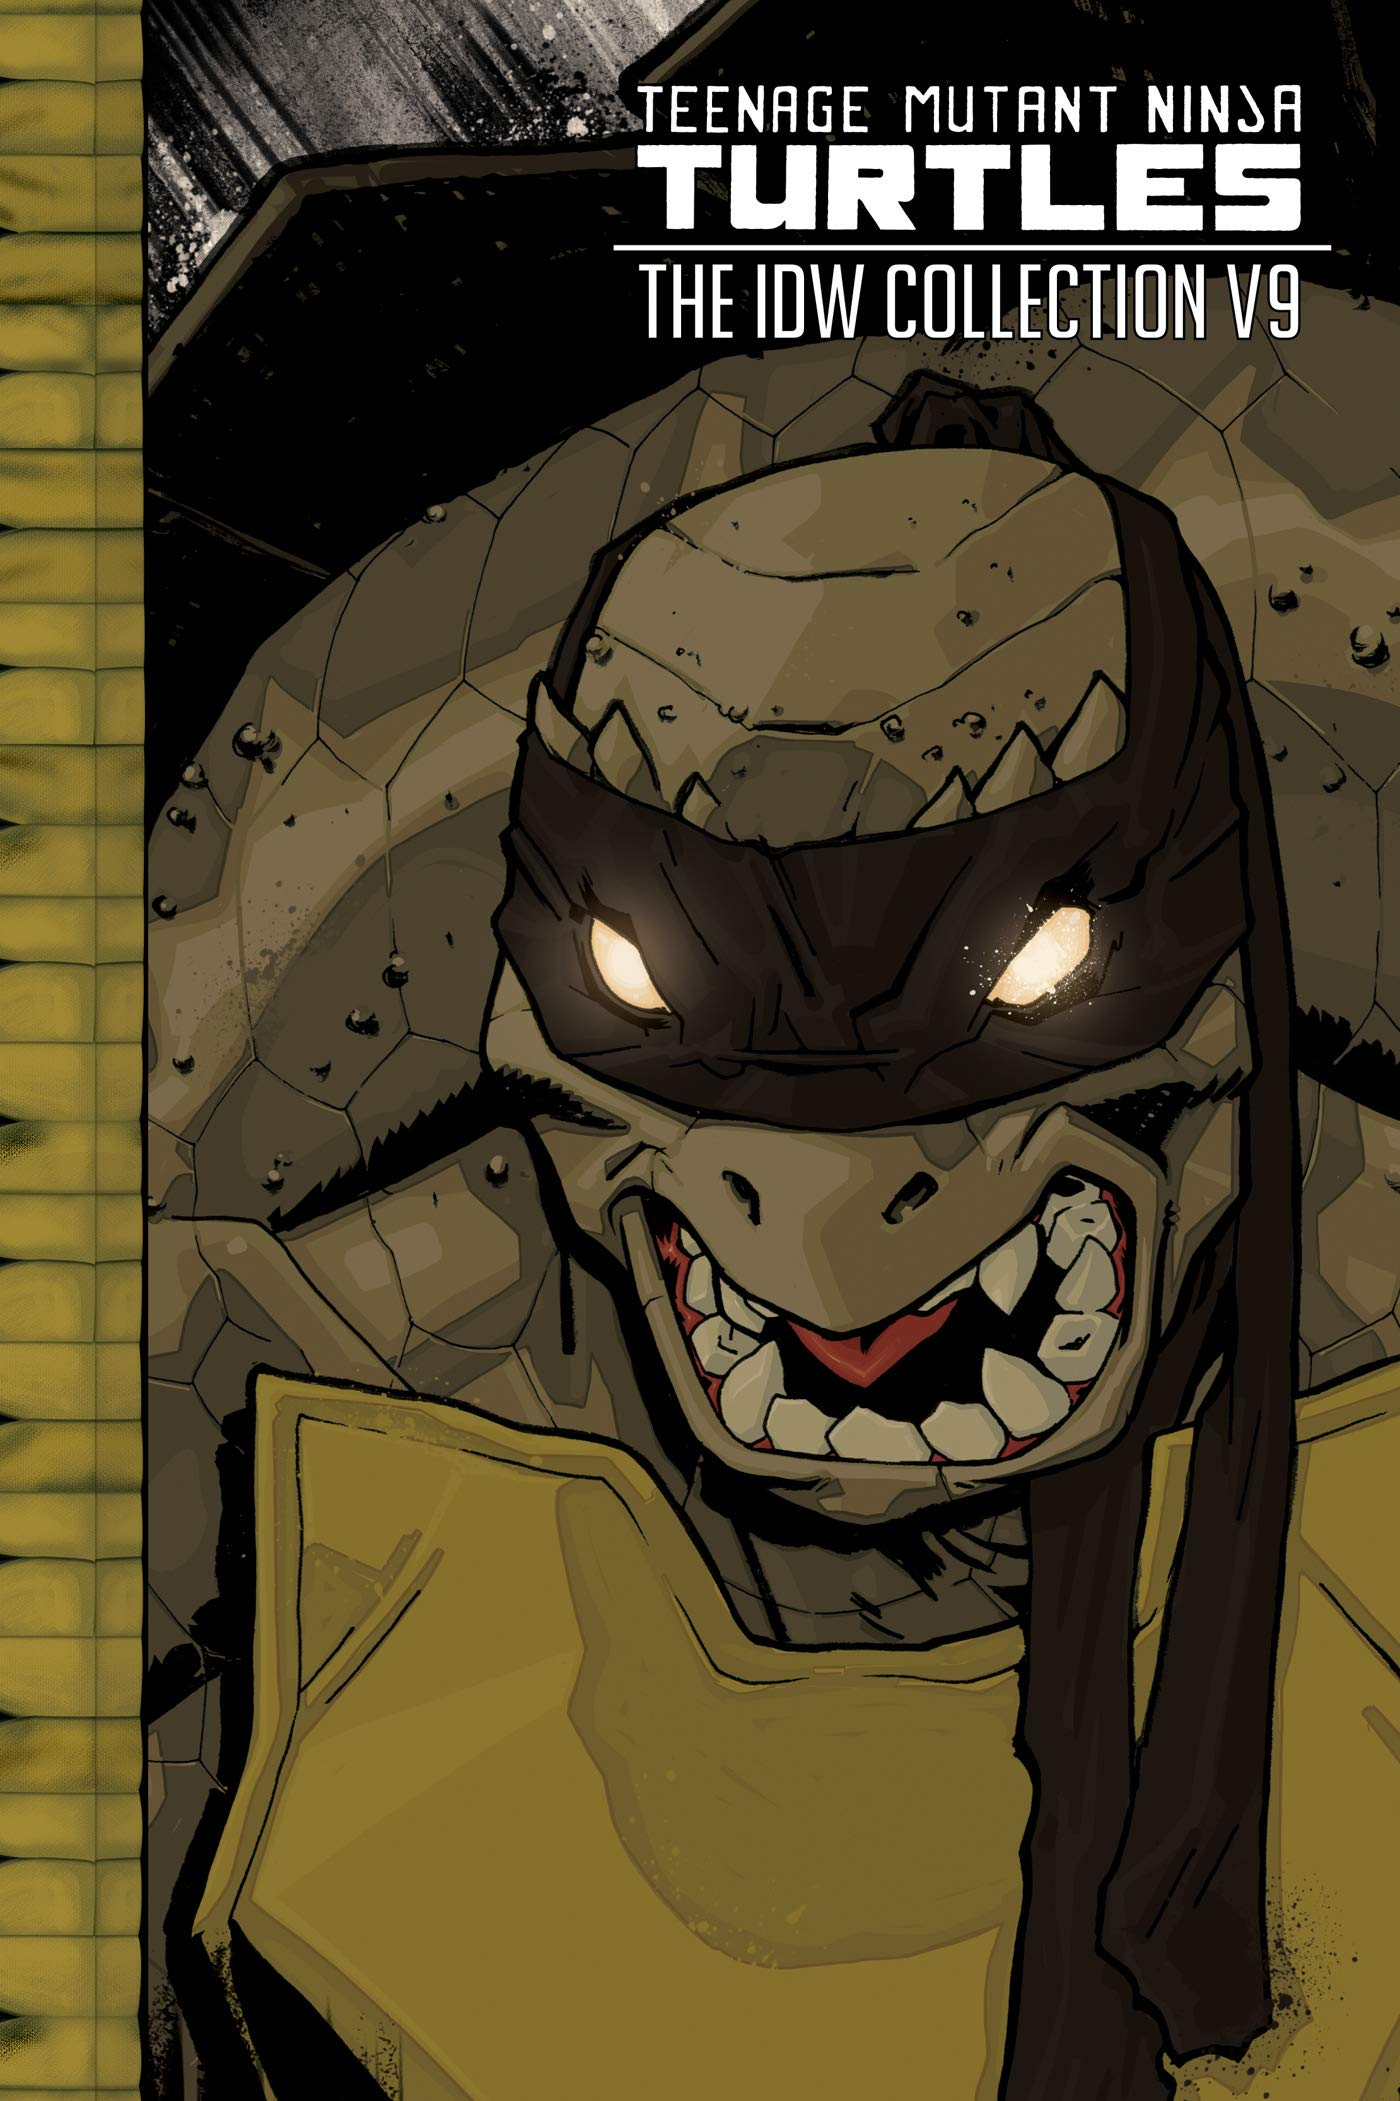 Teenage Mutant Ninja Turtles: The IDW Collection Volume 9 (TMNT IDW Collection) by IDW Publishing